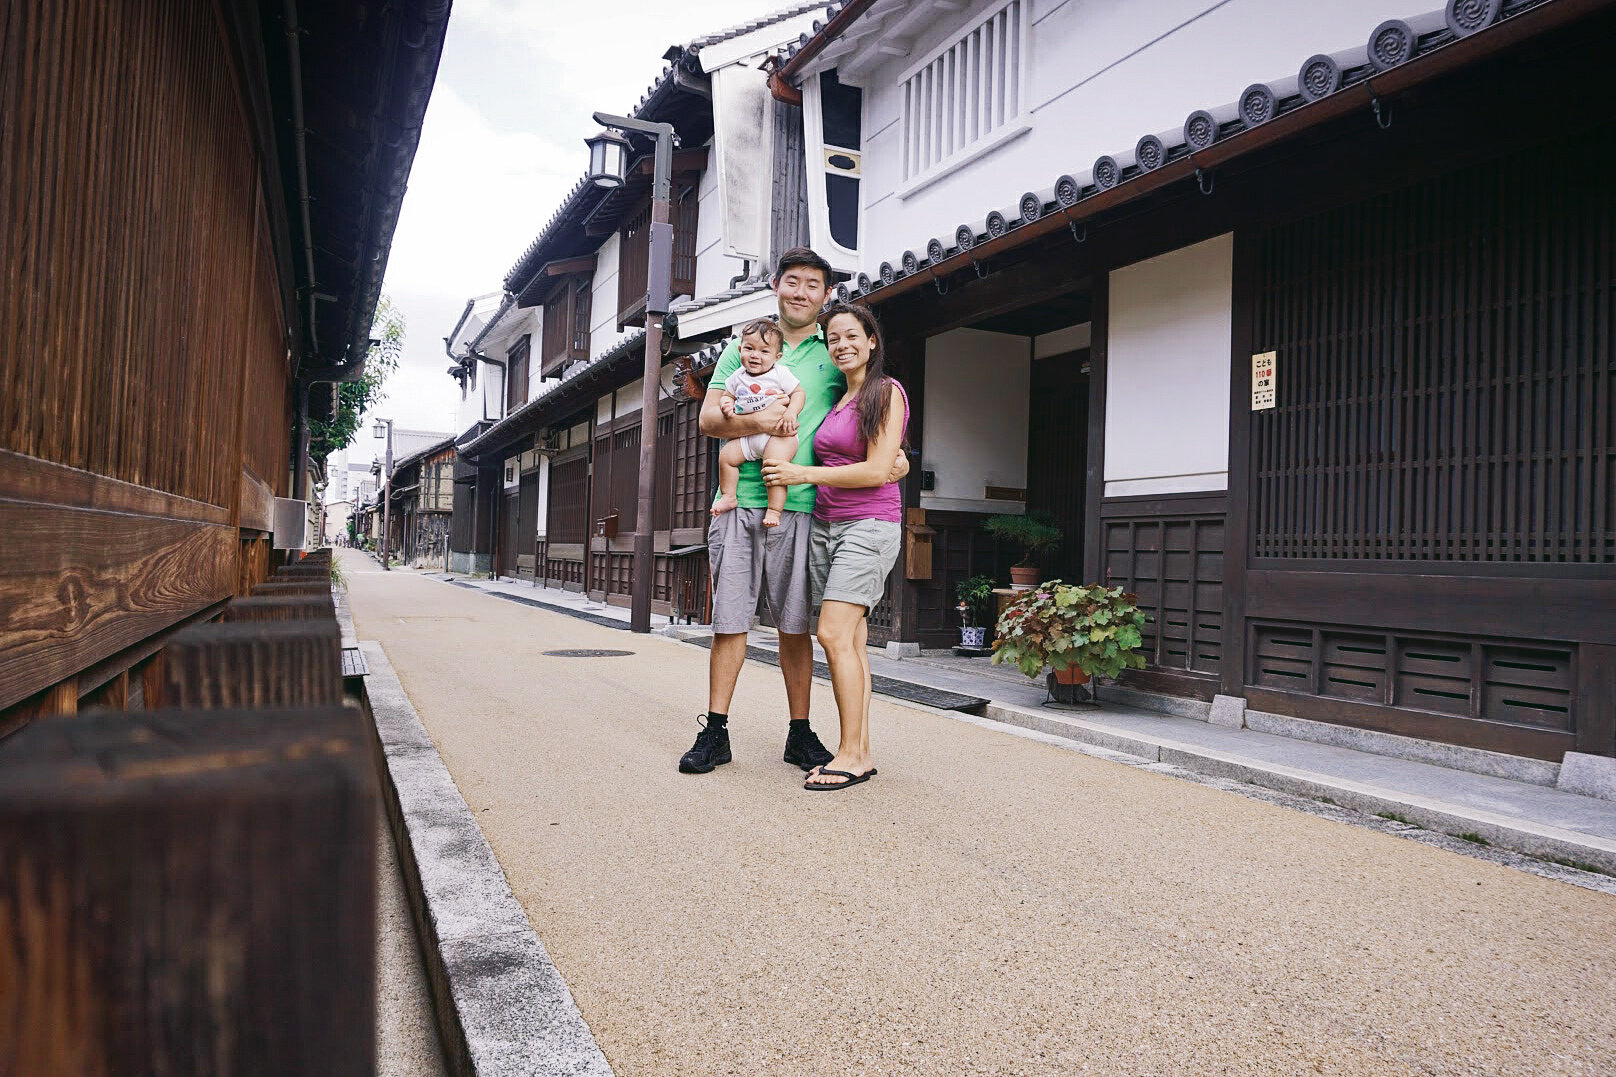 Steve & Jess exploring the Edo period streets of Imaicho with Elden (7 months old)